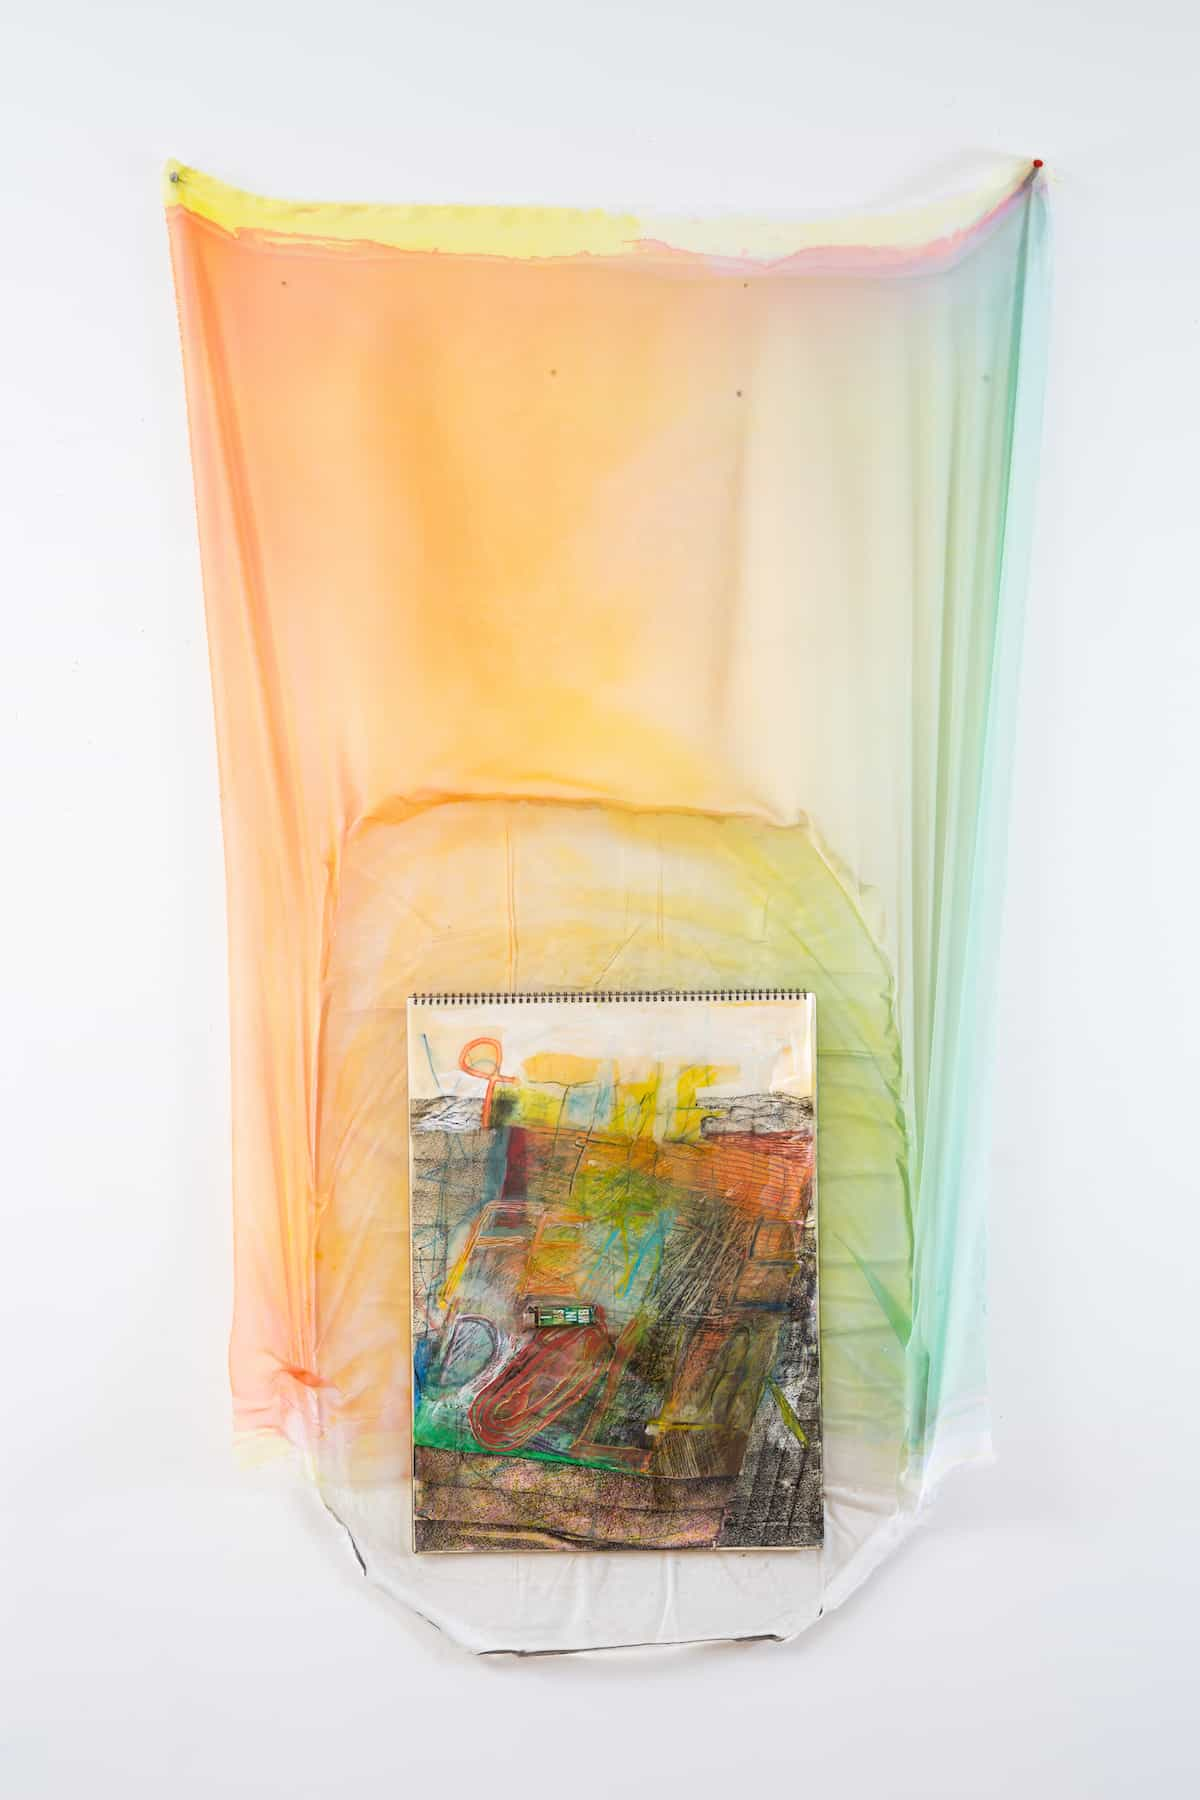 deCordova biennial The Female Dollar, 2015 | Heather Leigh McPherson | painted chiffon, cast epoxy, drawing pad, lighter | Courtesy of the artist